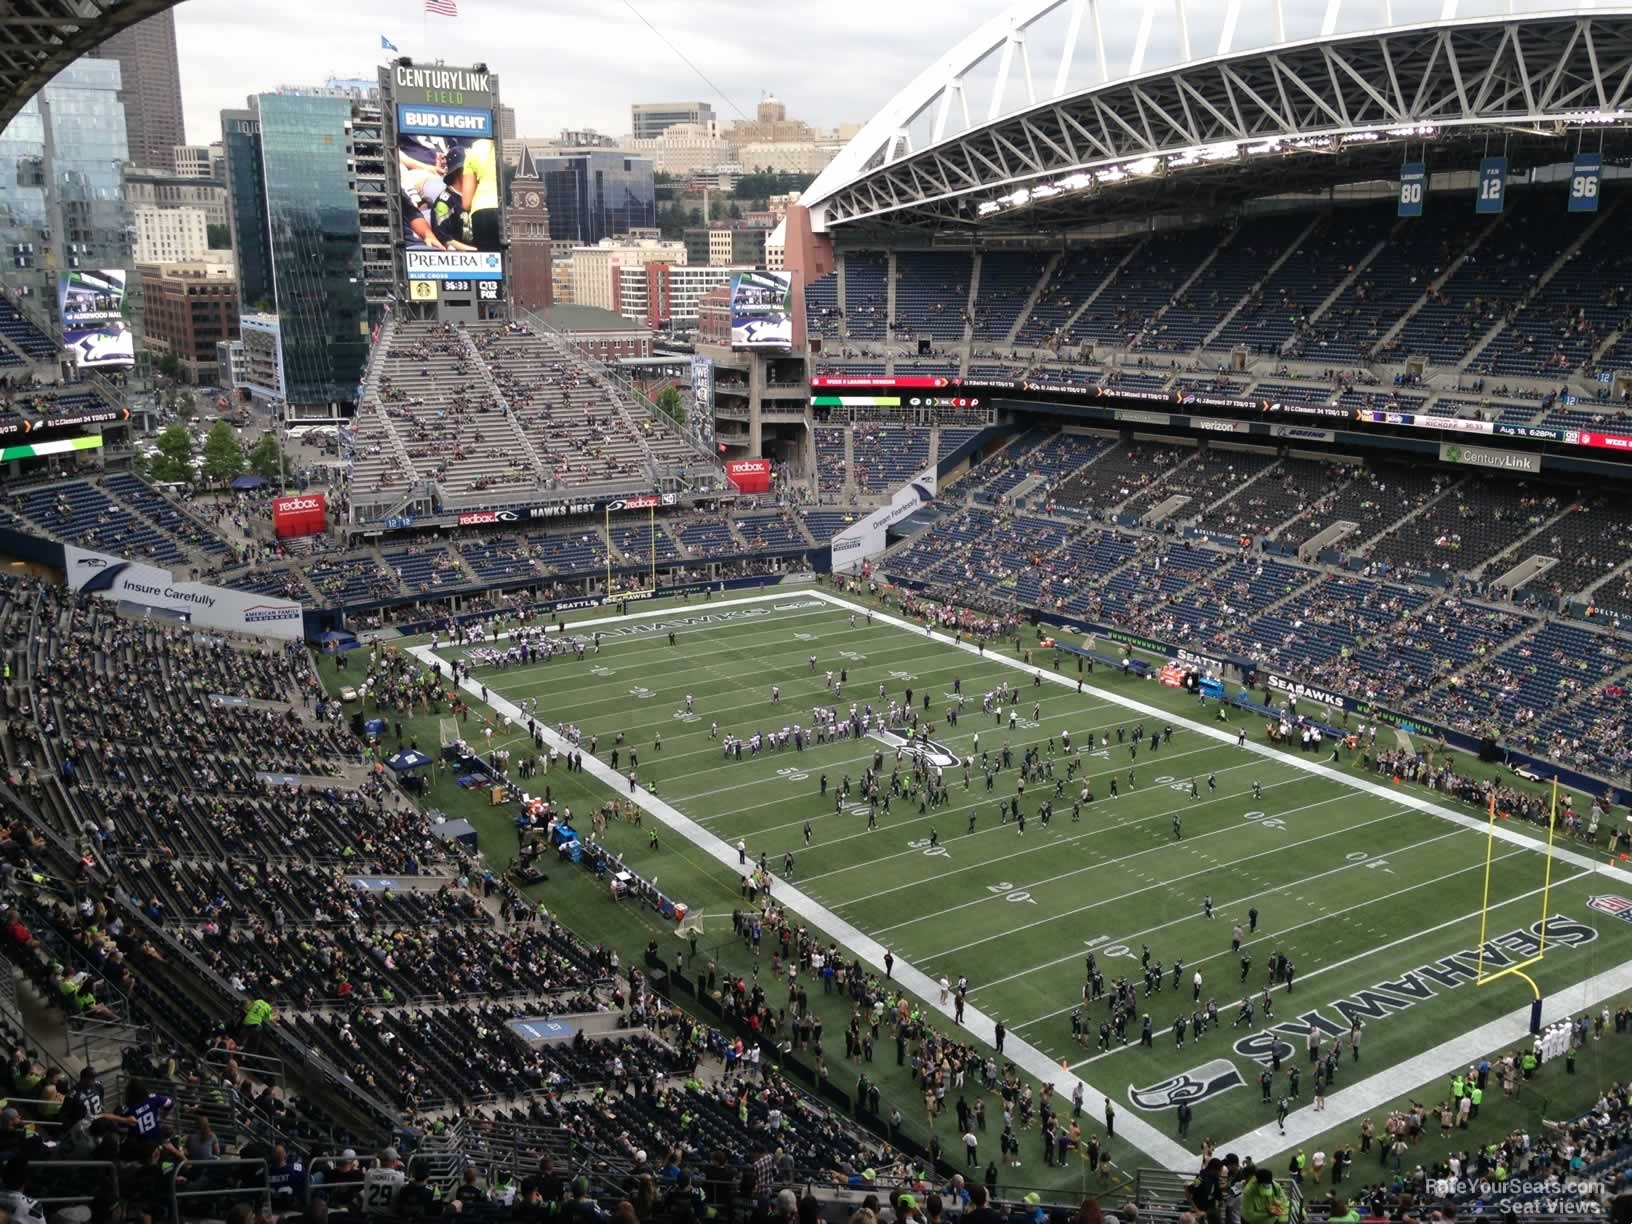 Centurylink Seating Chart with Rows and Seat Numbers New Centurylink Field Section 328 Seattle Seahawks